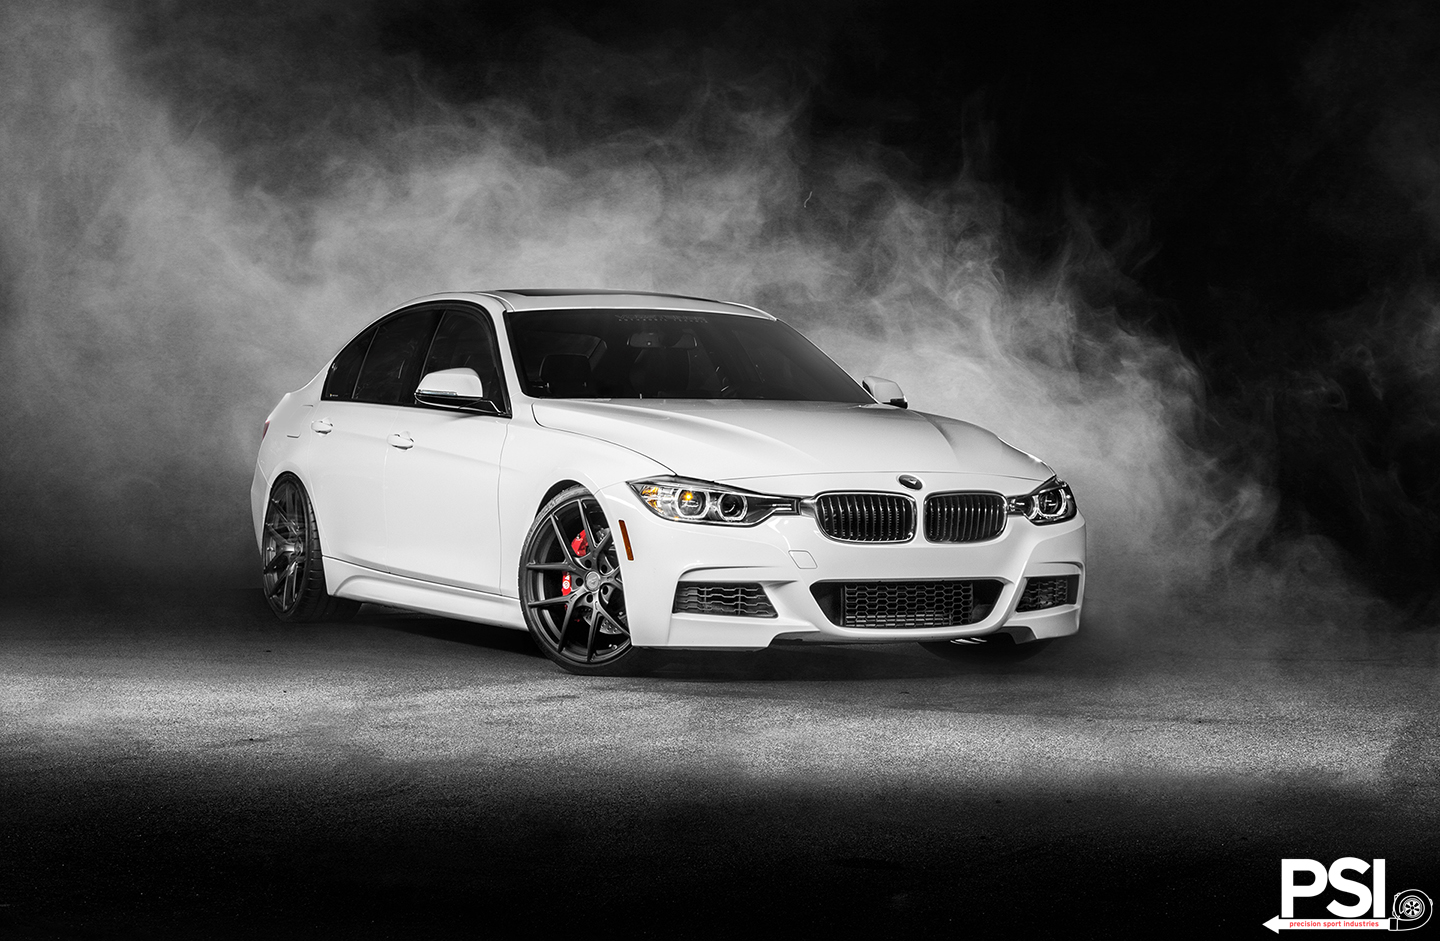 Vorsteiner Flowform Wheels by PS